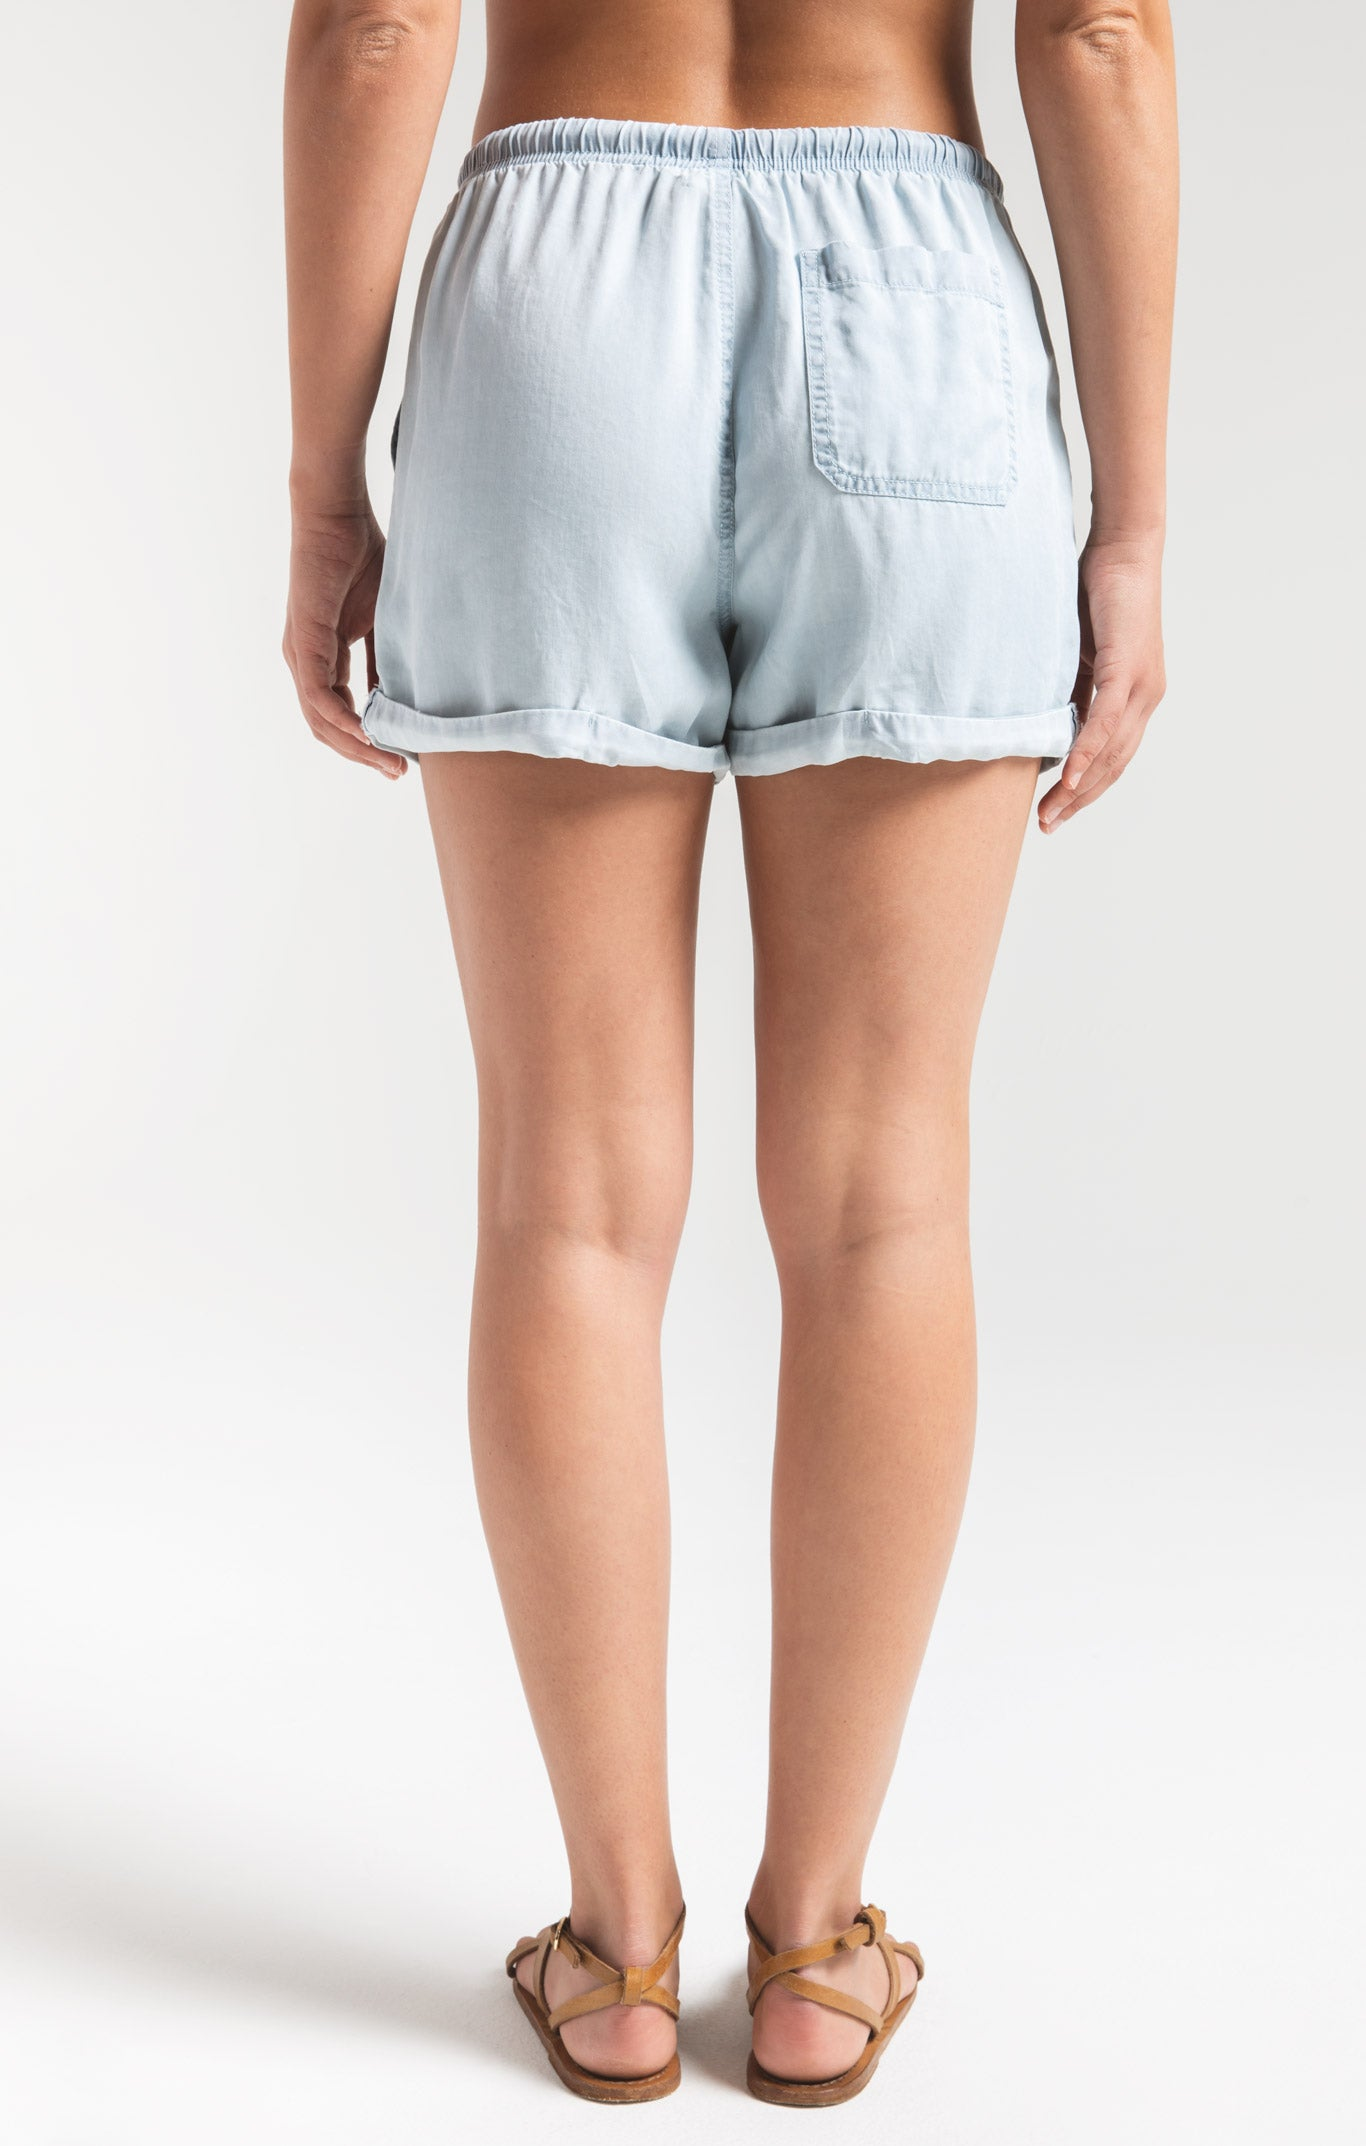 Shorts Dreamland Beach Short by Rag Poets Light Blue Wash